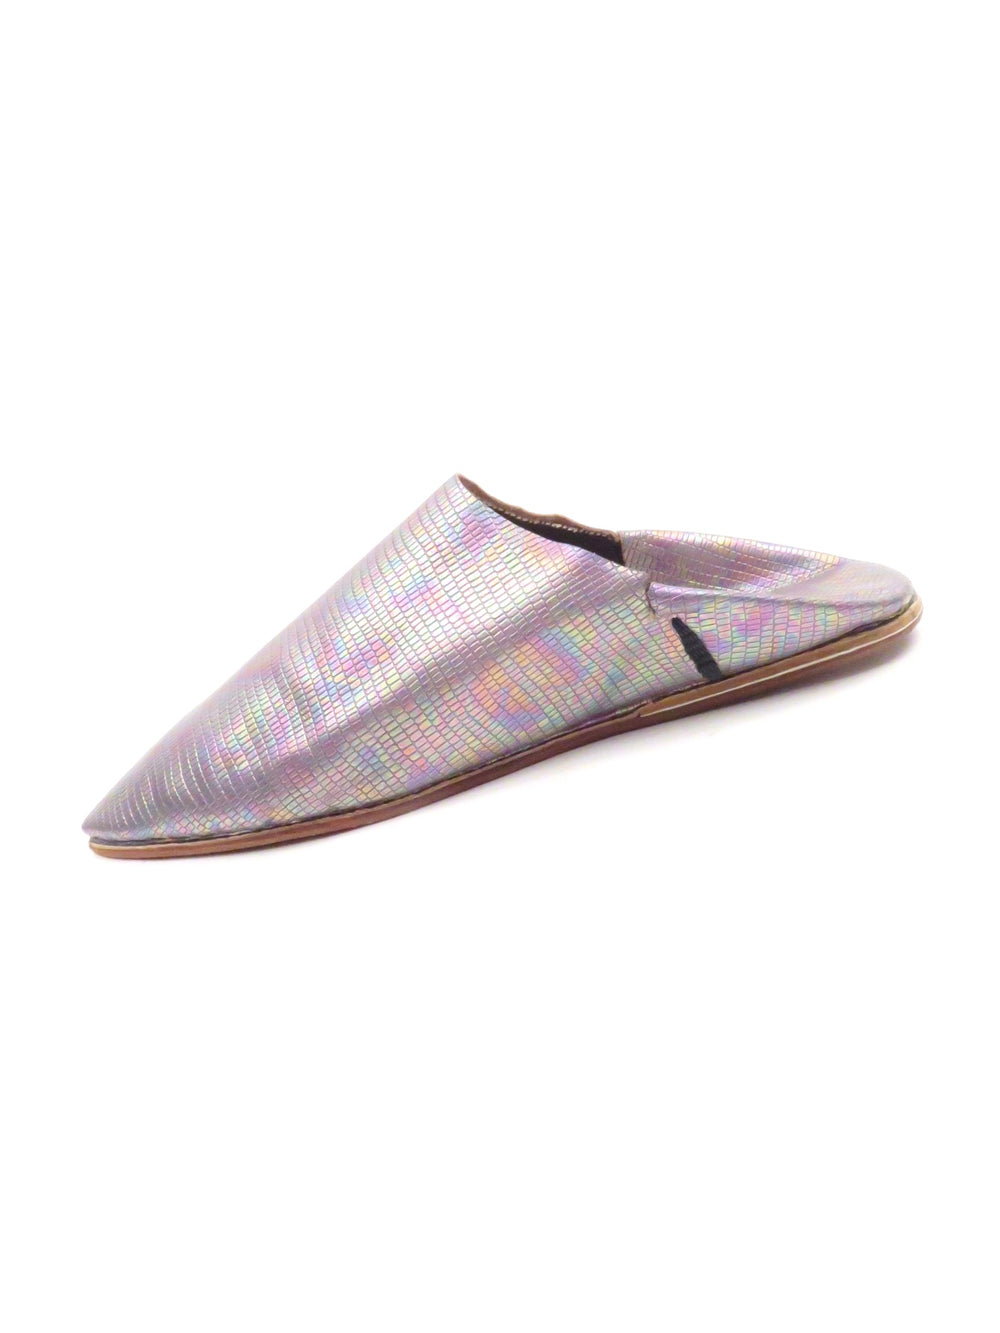 super babough fes grey leather slippers.